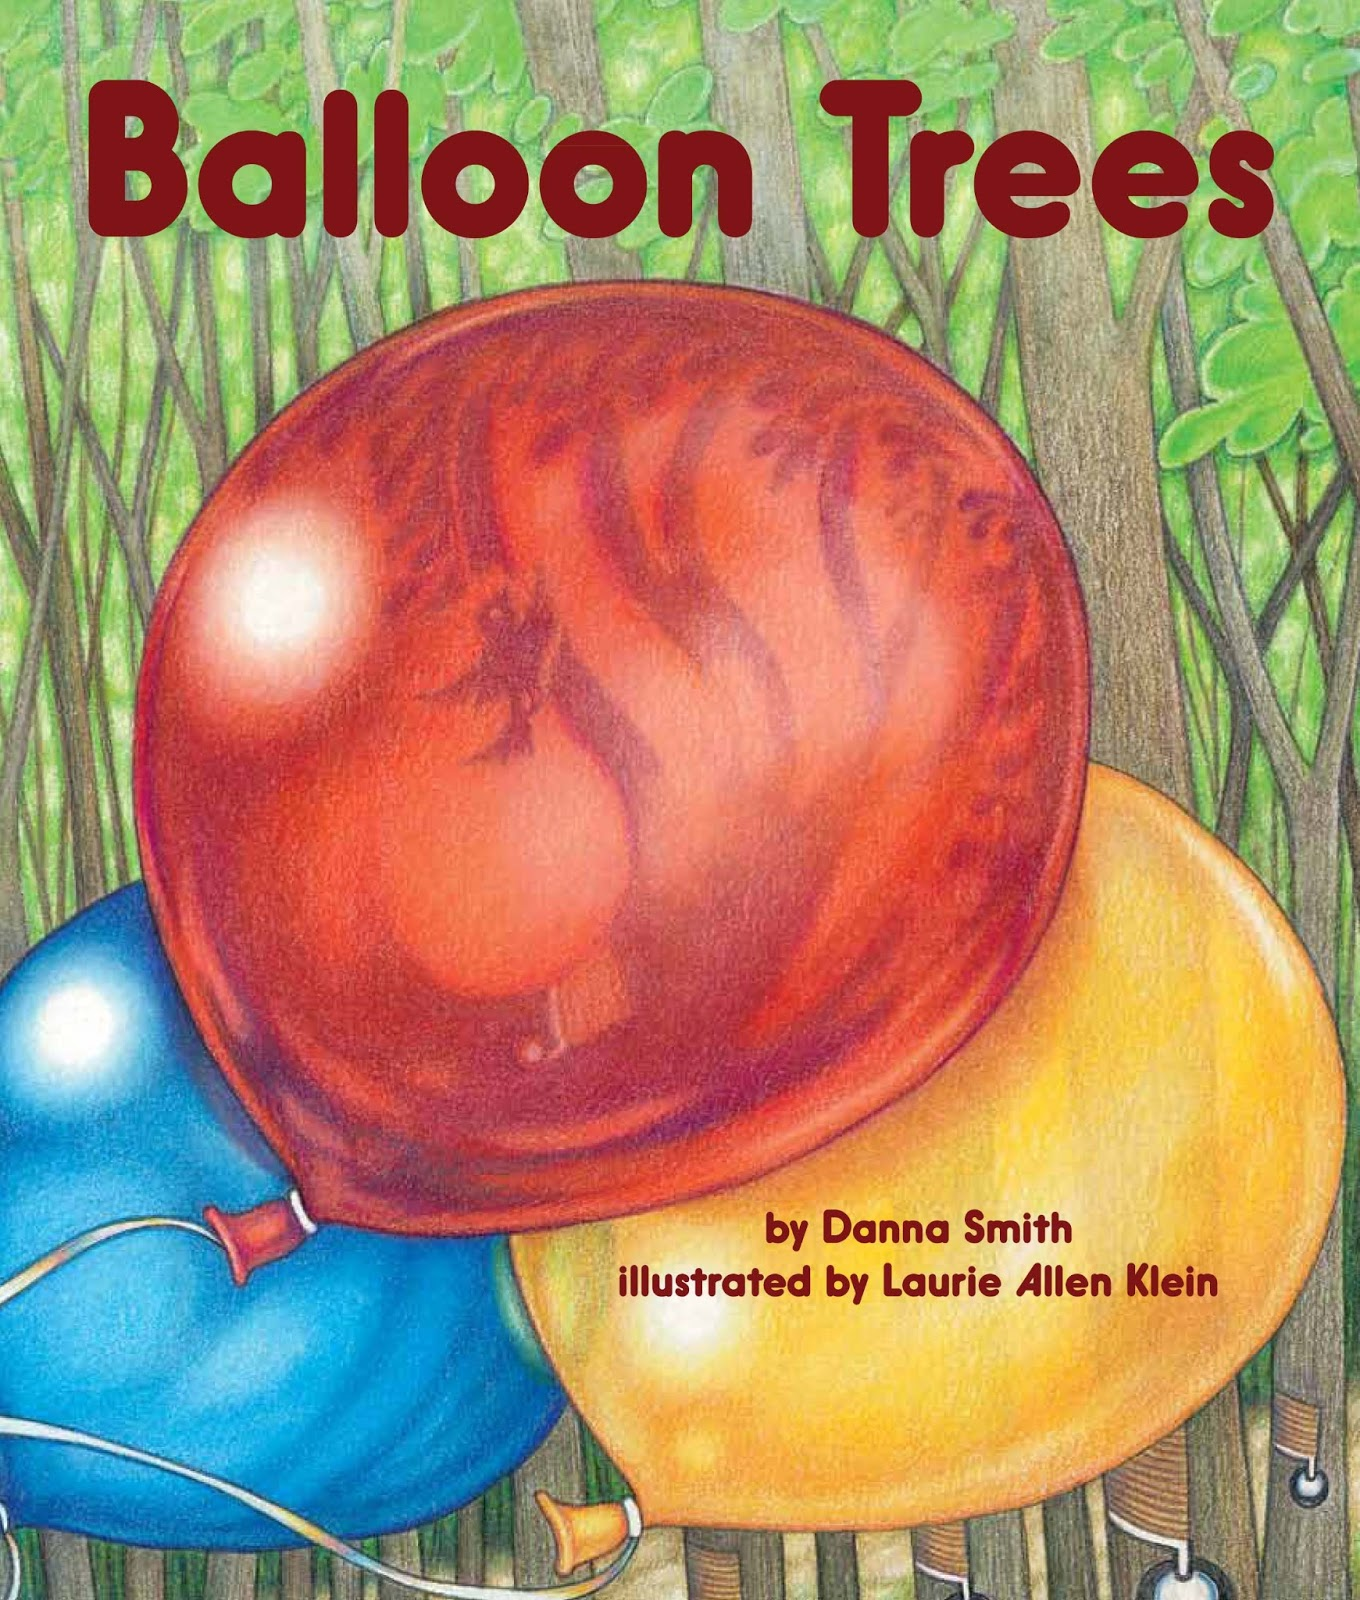 Balloon Trees Danna Smith and Laurie Allen Klein